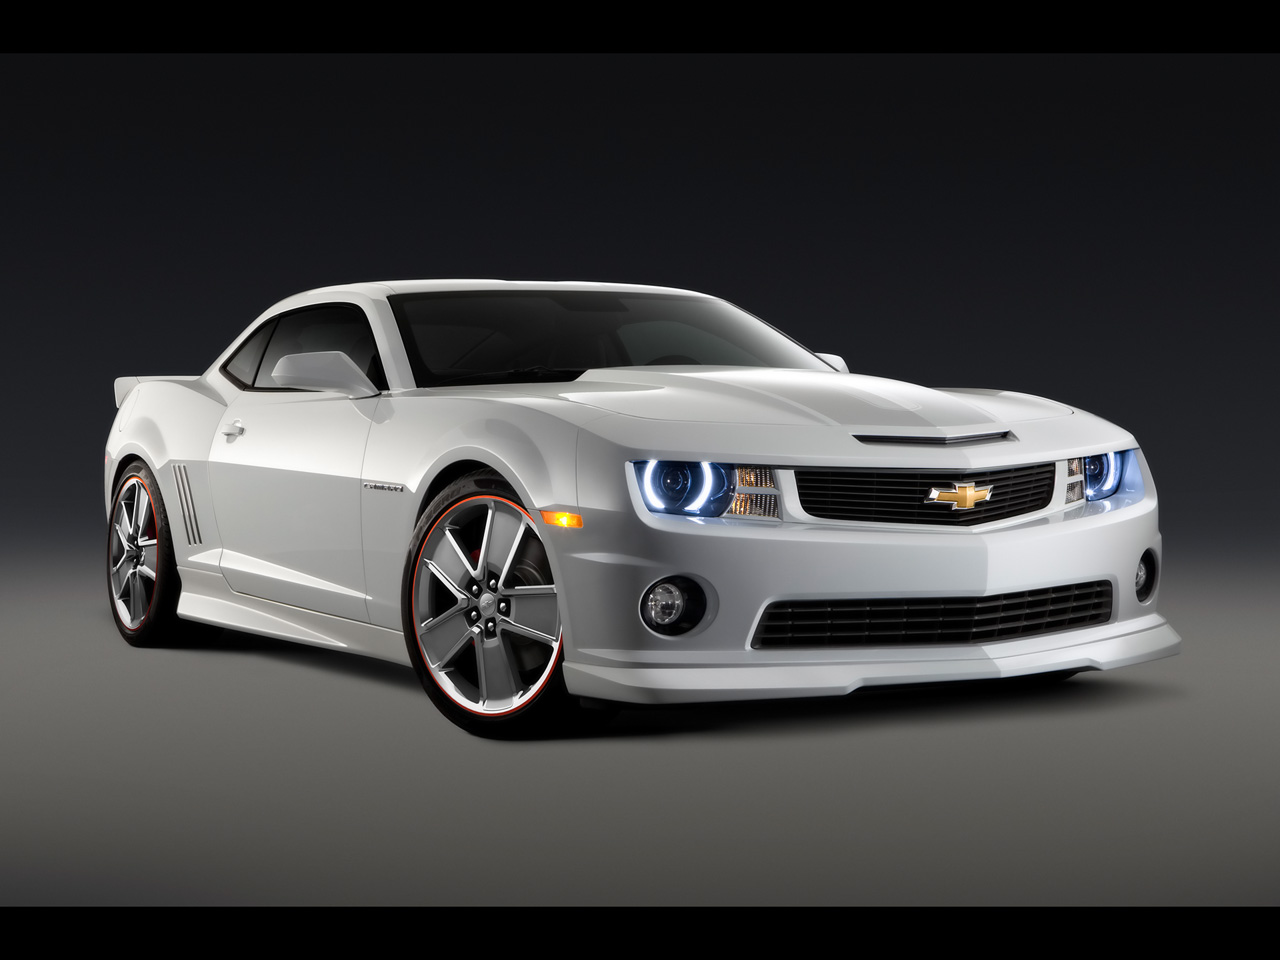 Chevy Muscle Car Wallpaper 6022 Hd Wallpapers in Cars   Imagescicom 1280x960